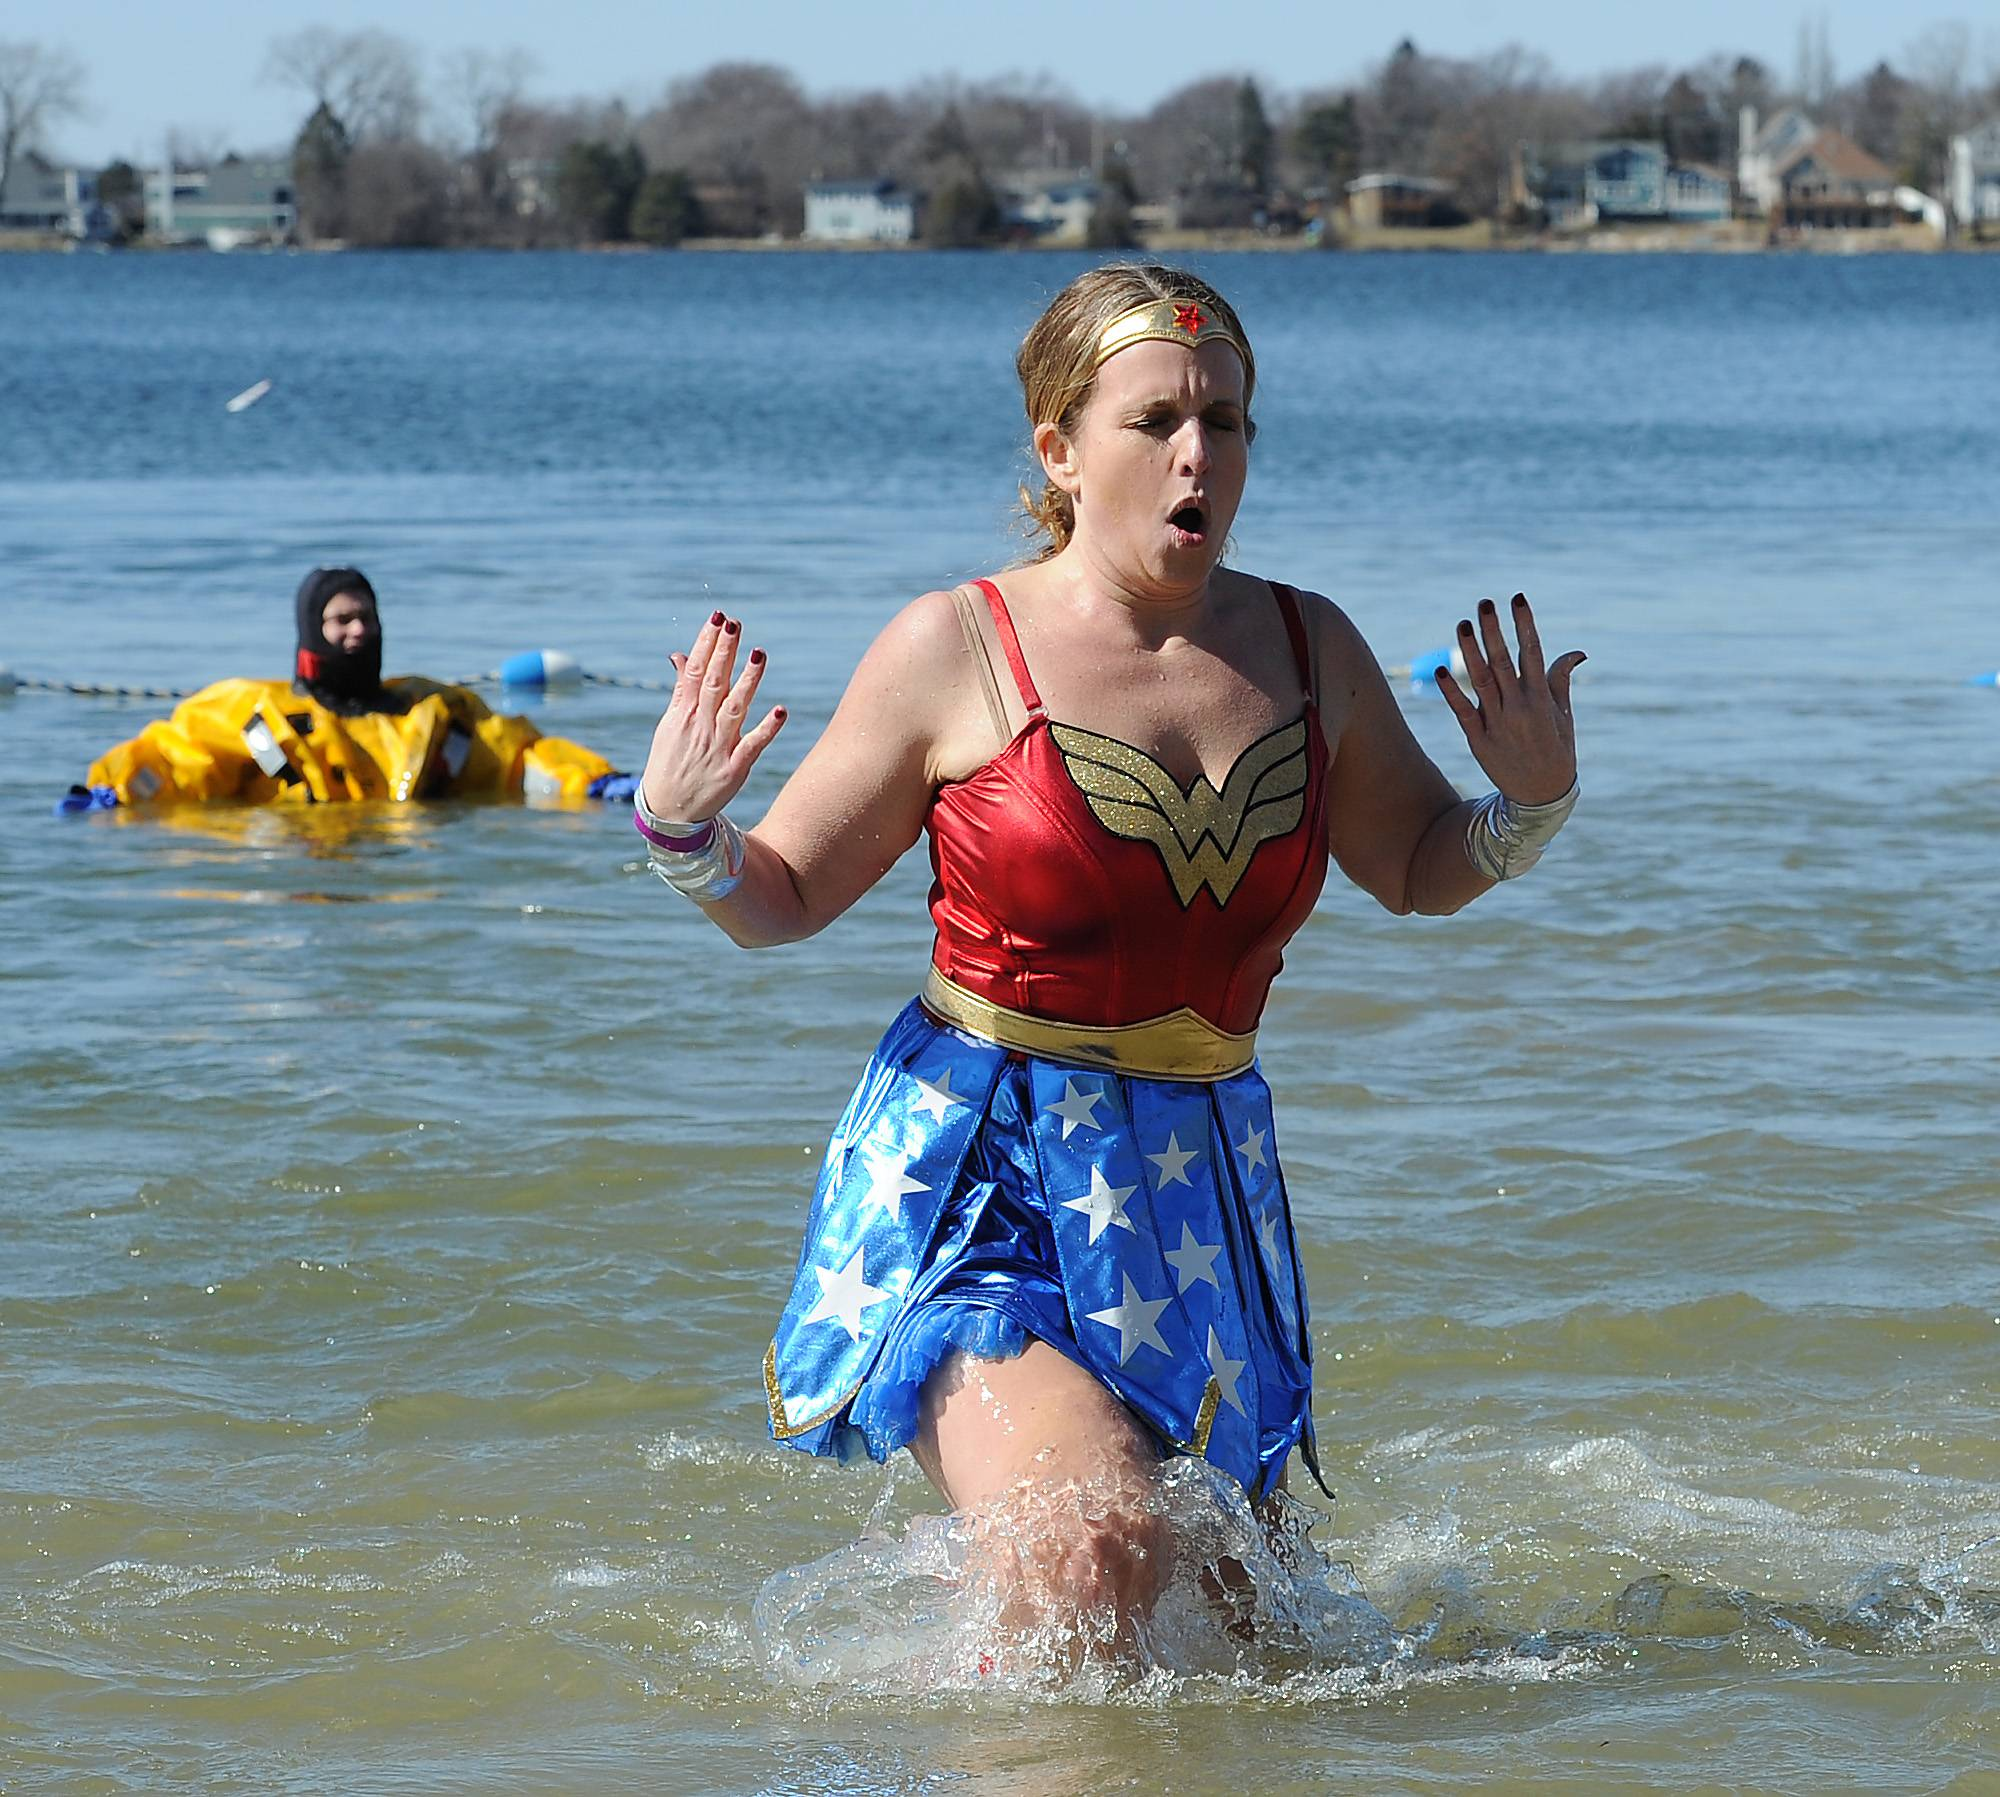 Tracy Fitzgerald, 42, of Schaumburg dressed as Wonder Woman, was not feeling so wonderful after she plunged into the cold water at Breezewald Beach to support cancer survivors.